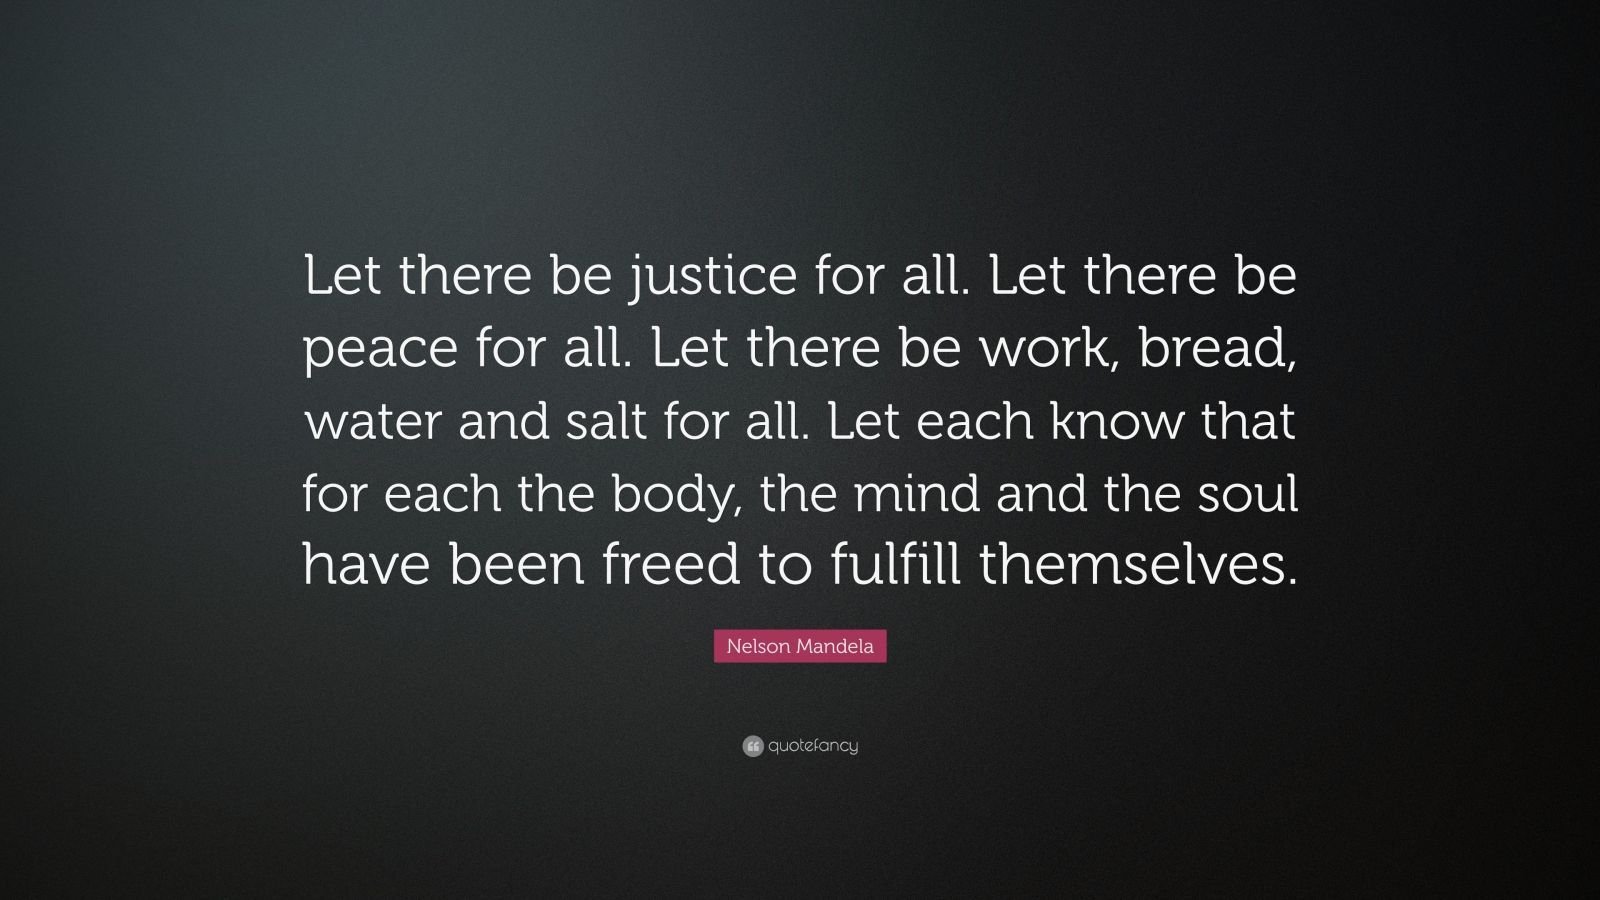 "Nelson Mandela Quote: ""Let there be justice for all. Let there be peace for all. Let there be work, bread, water and salt for all. Let each know that for each the body, the mind and the soul have been freed to fulfill themselves."""